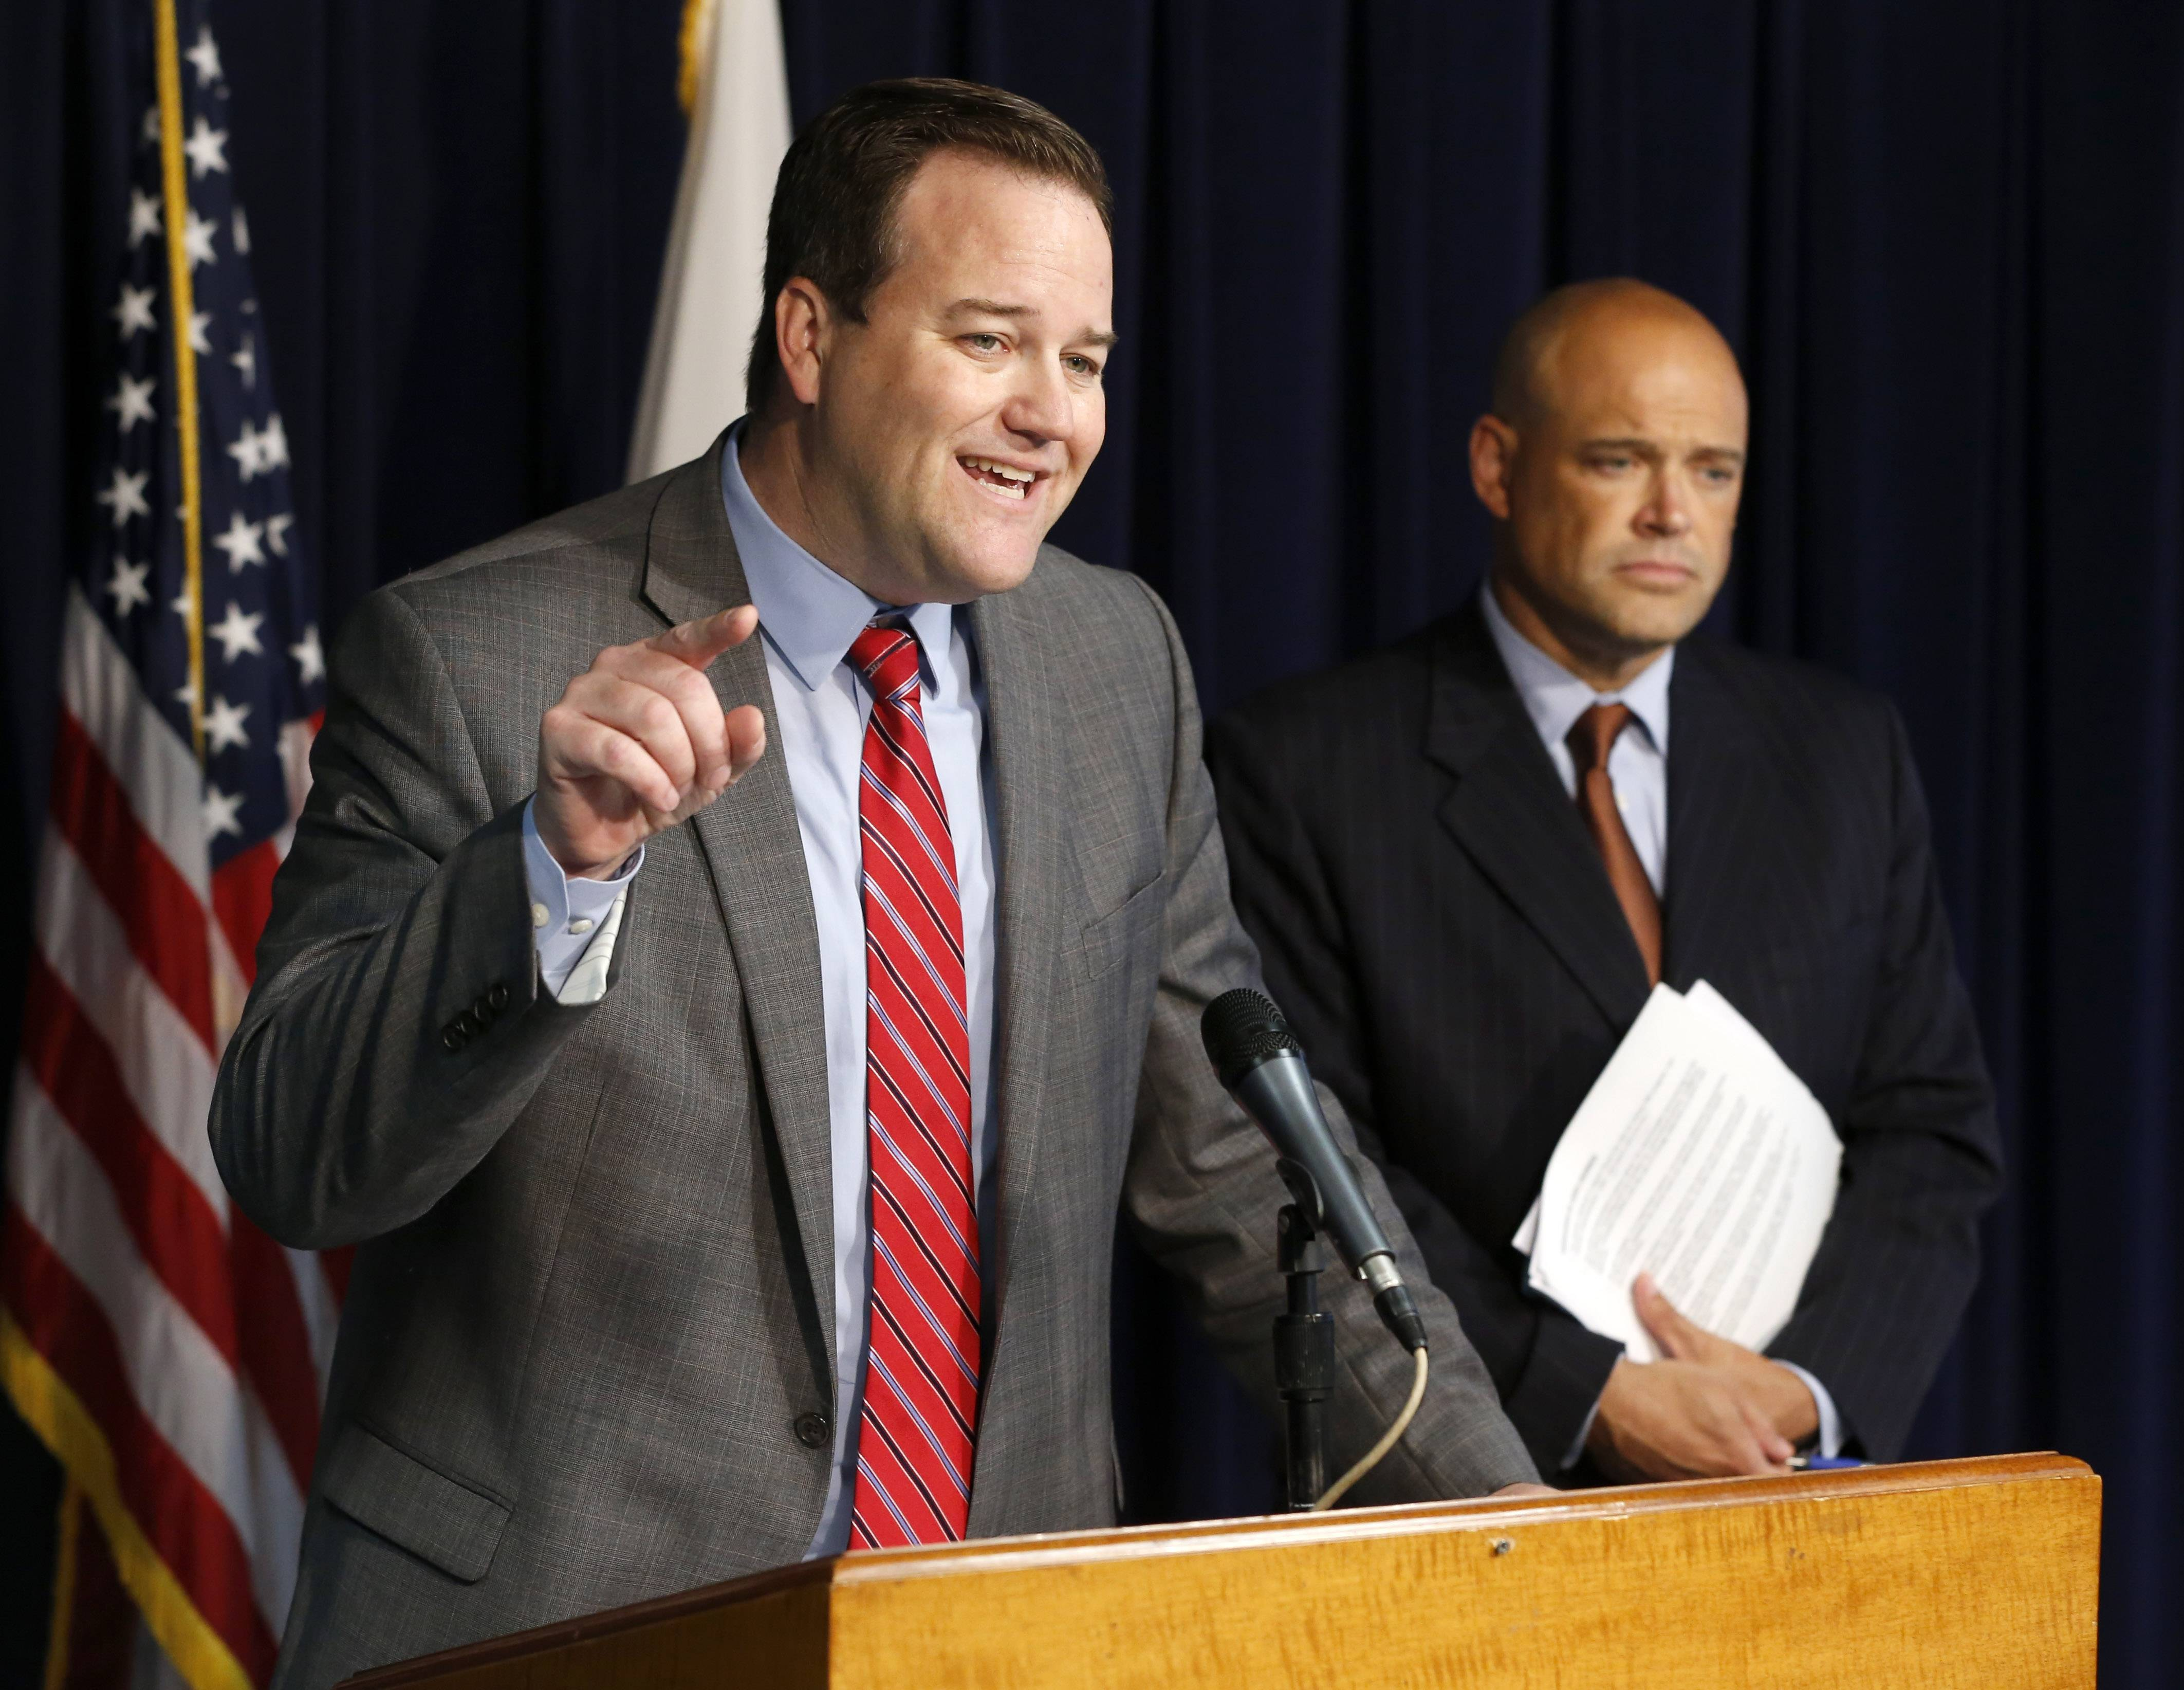 State Sen. Matt Murphy, left, talks about Gov. Pat Quinn's anti violence program as state Rep. Ron Sandack listens during a news conference Wednesday in Chicago.